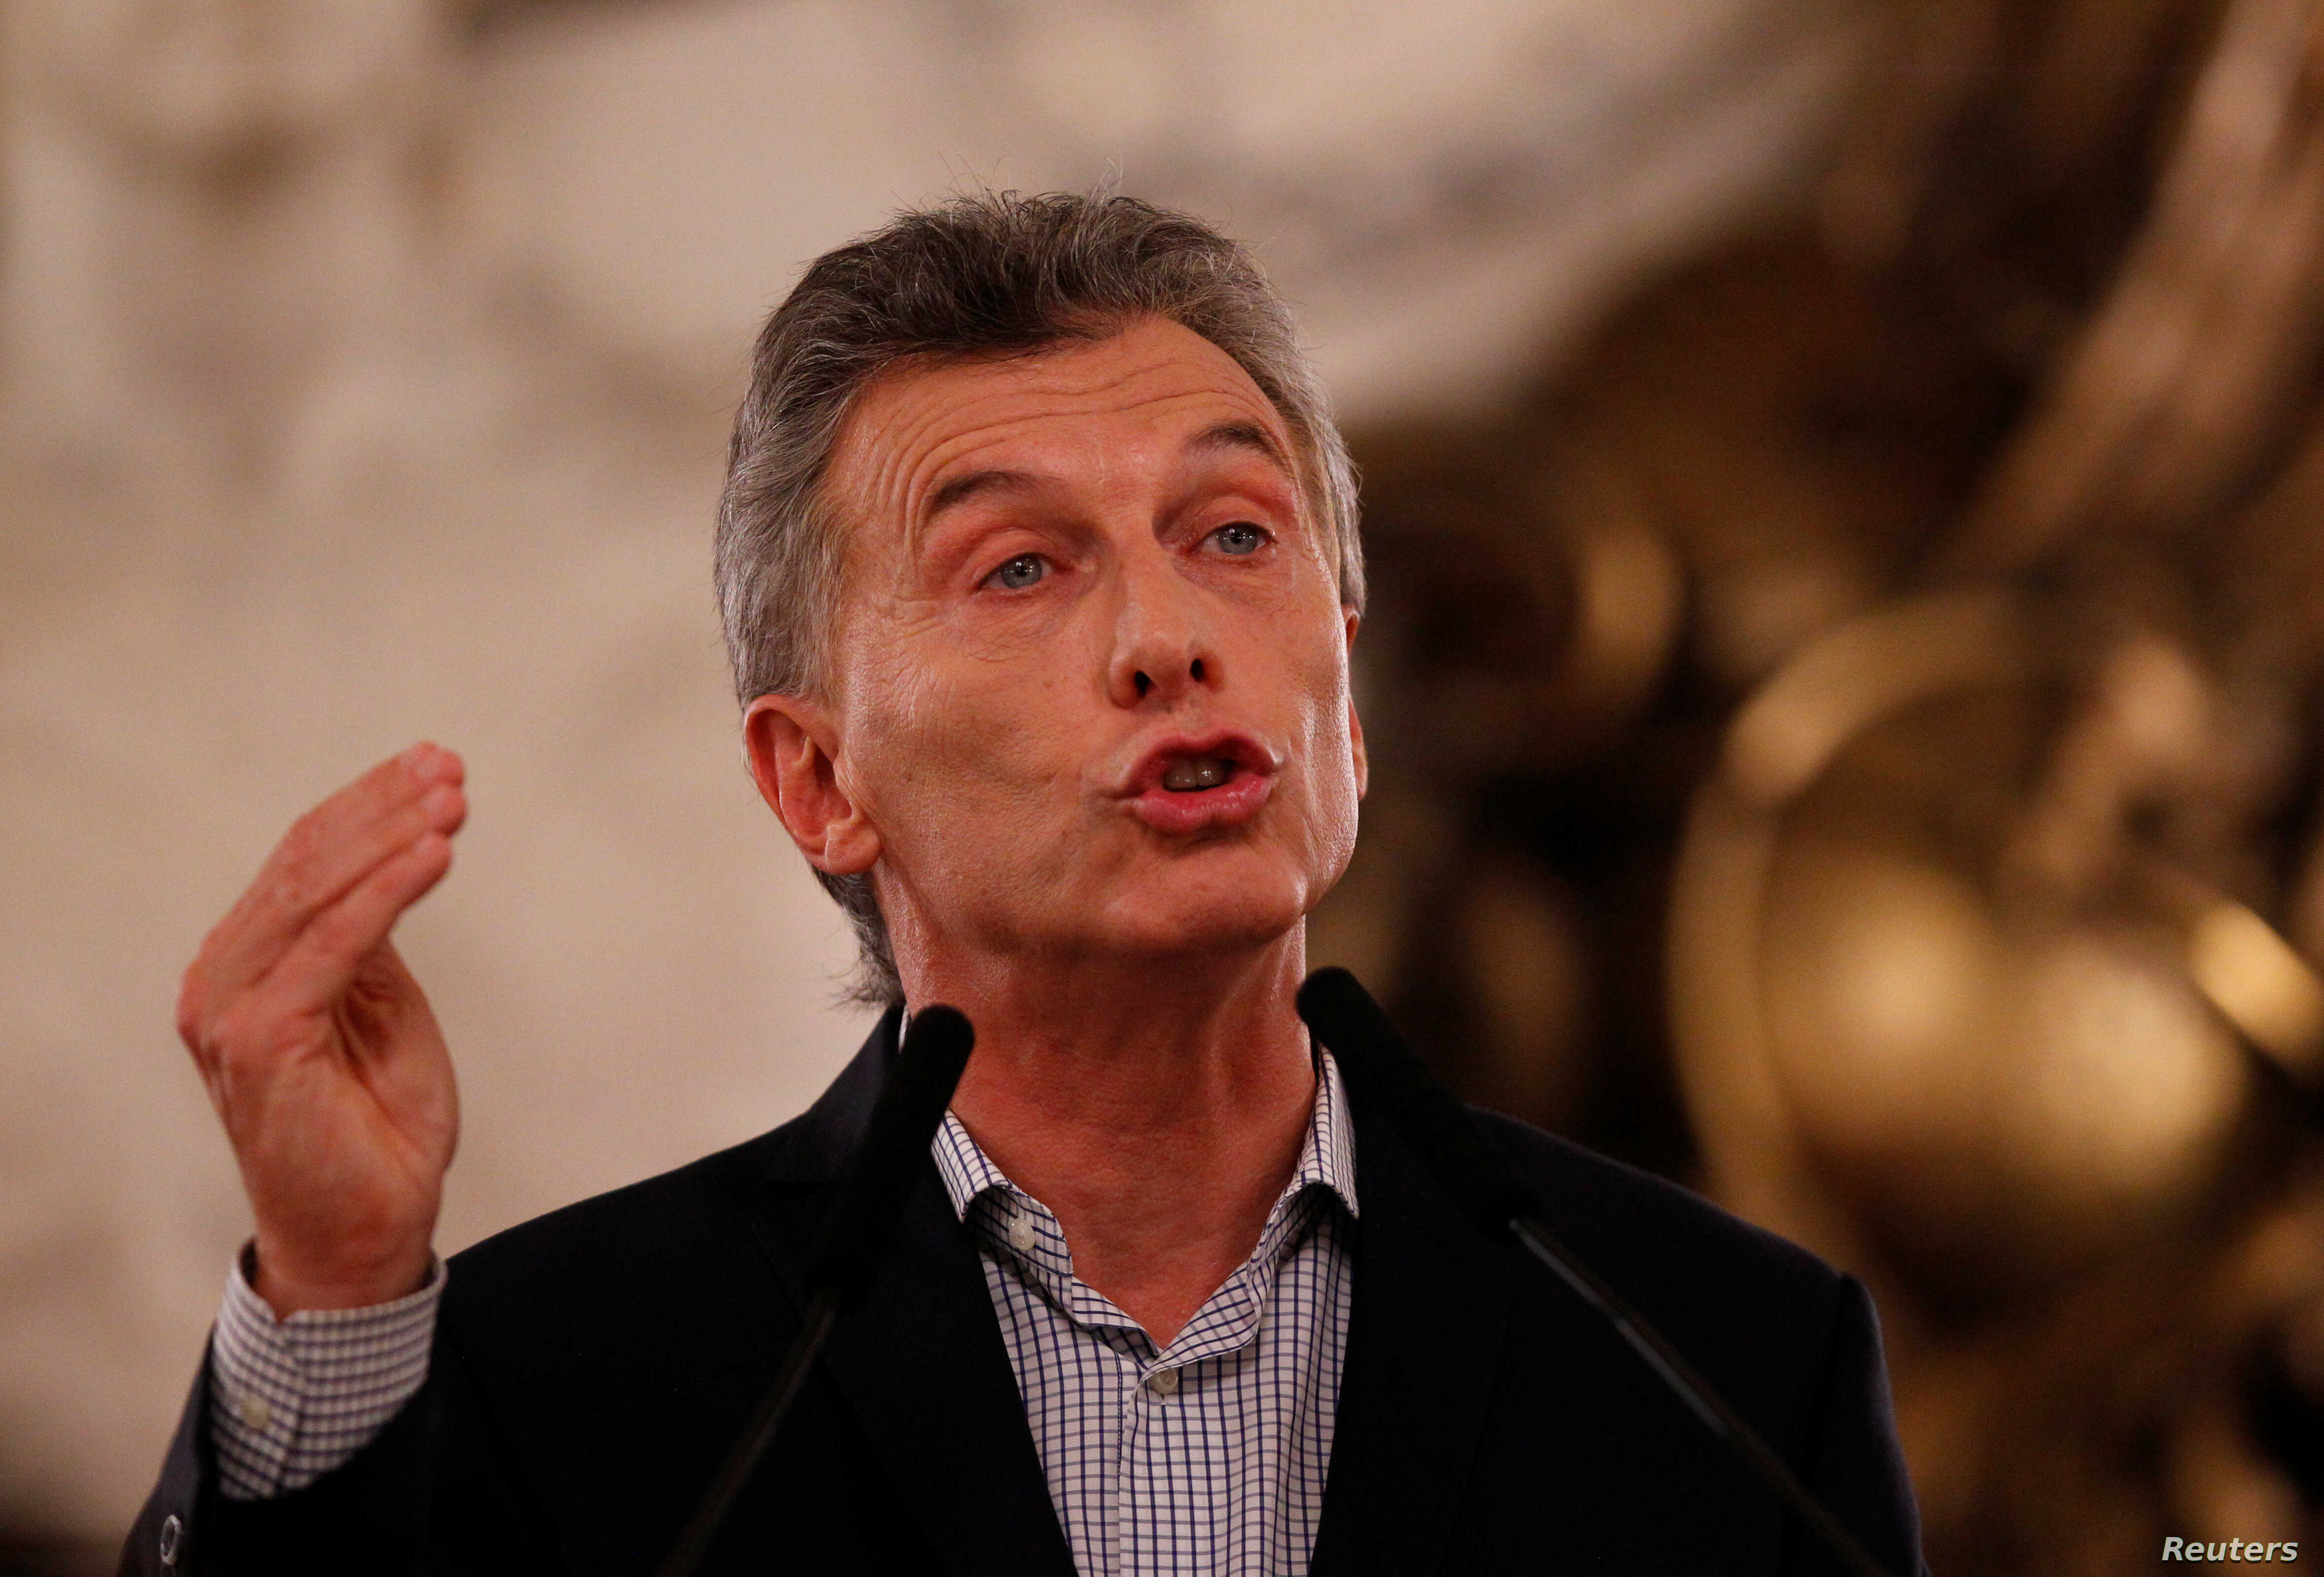 Argentina's President Mauricio Macri addresses the media during a news conference in Buenos Aires, Feb. 16, 2017.